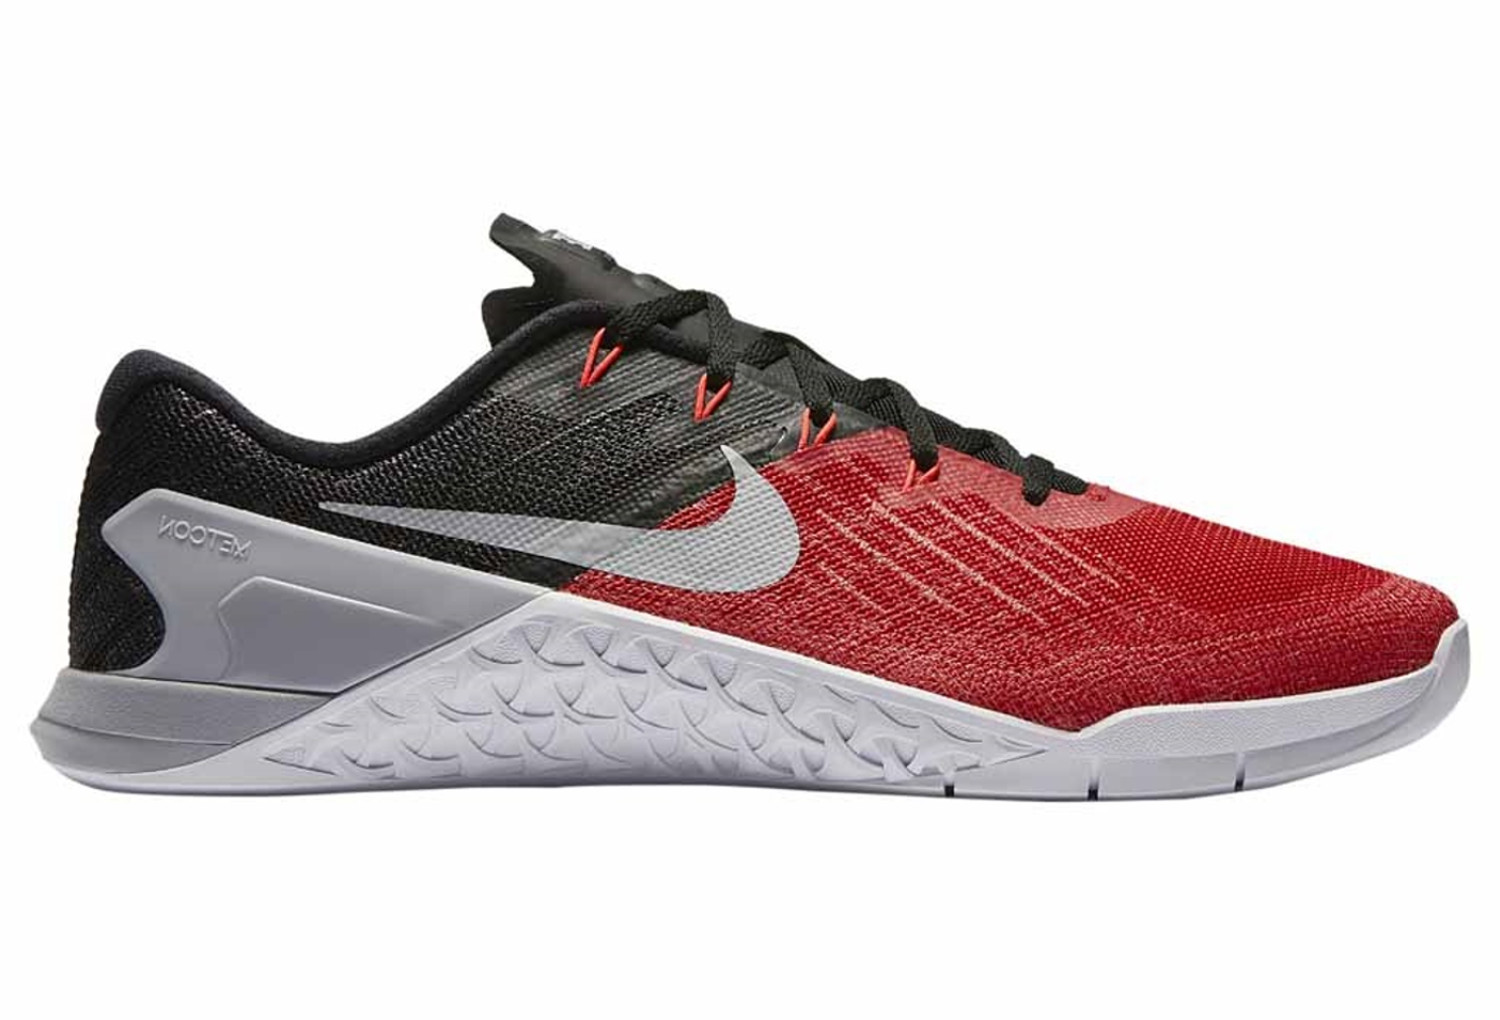 chaussures de cross training nike metcon 3 rouge. Black Bedroom Furniture Sets. Home Design Ideas